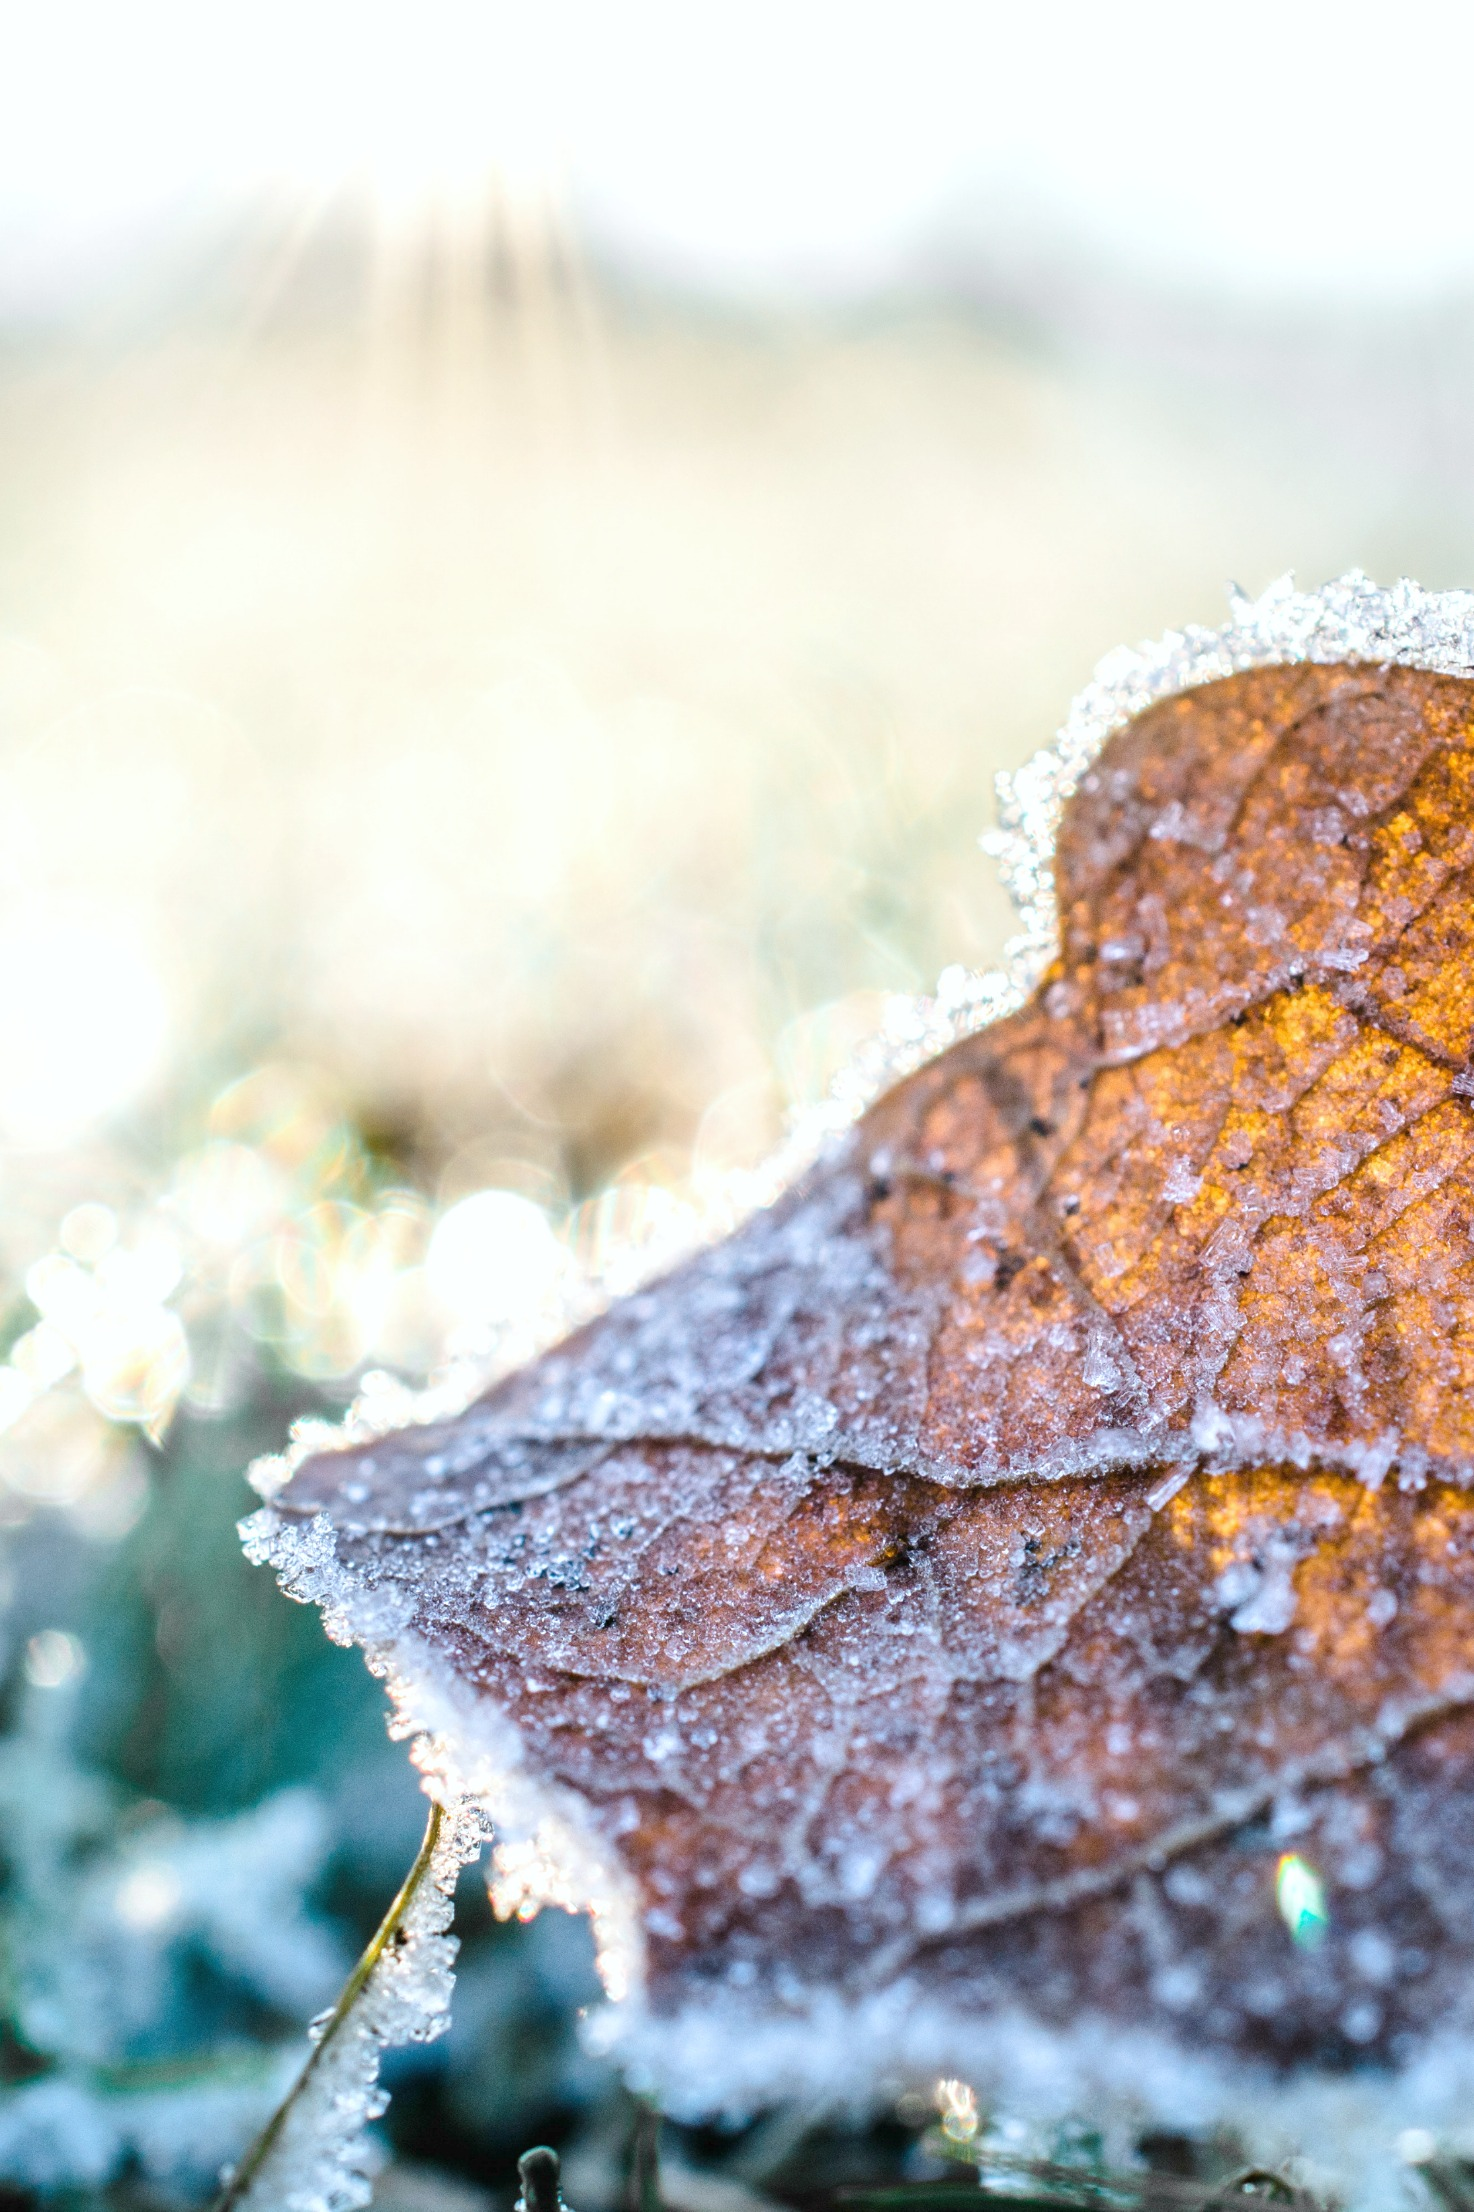 A browned leaf on the ground, there is frost covering it and the grass surrounding it.